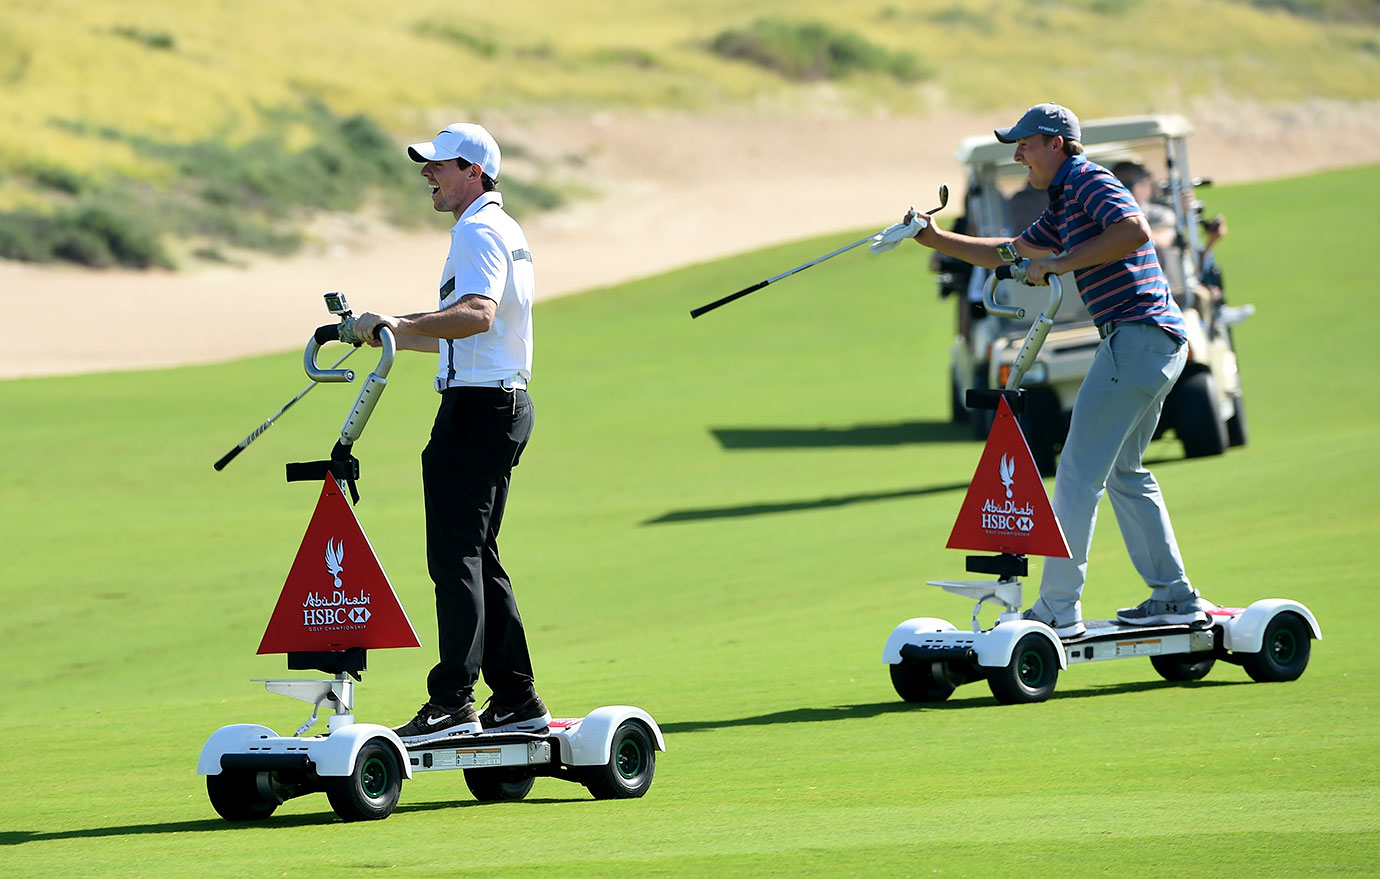 Rory McIlroy and Jordan Spieth look ready to joust as they ride GolfBoards during the Rider Cup Desert Challenge in Abu Dhabi.